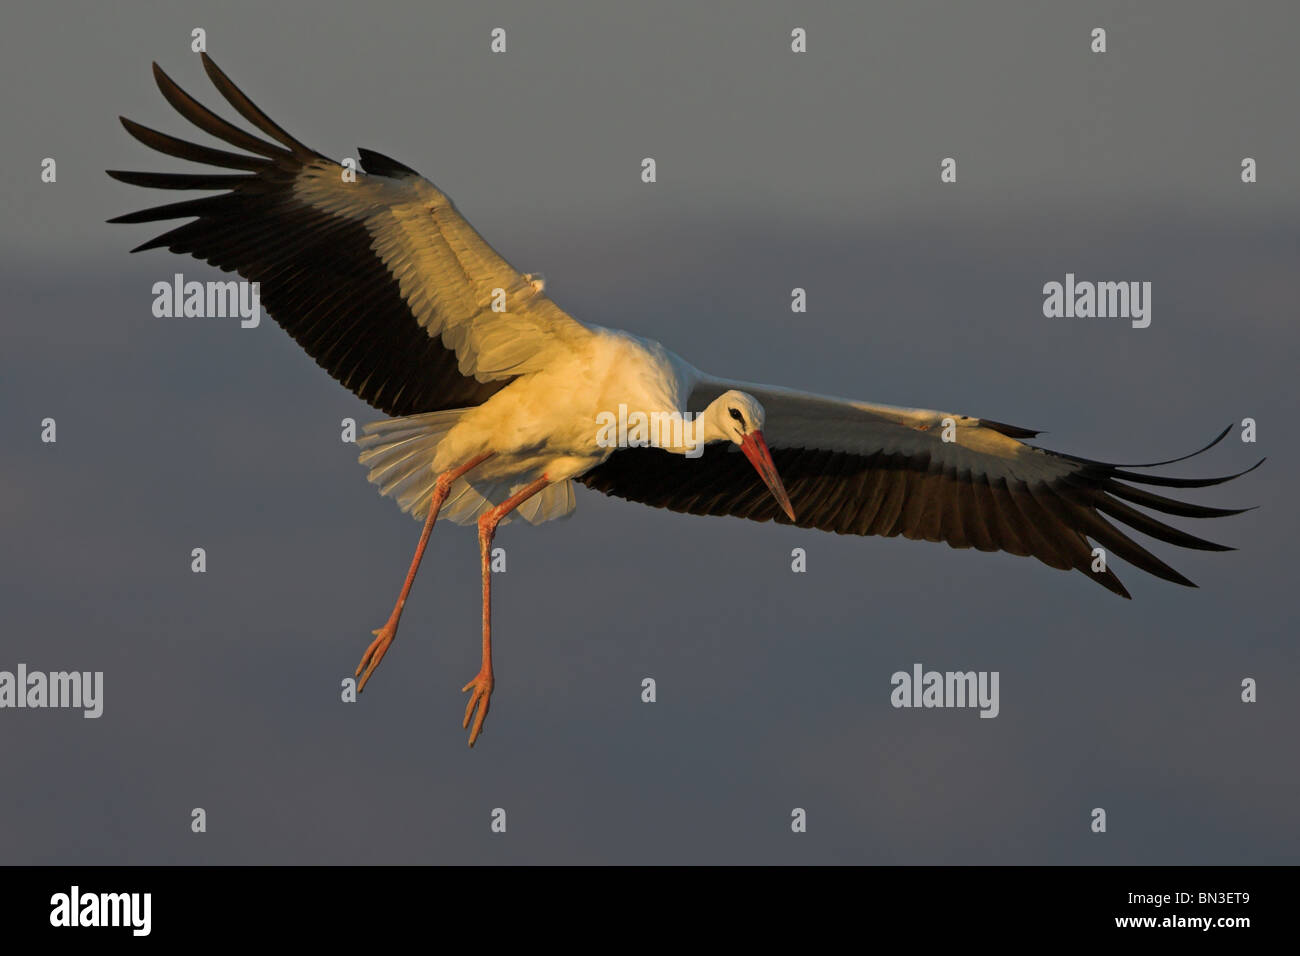 White Stork (Ciconia ciconia) flying - Stock Image